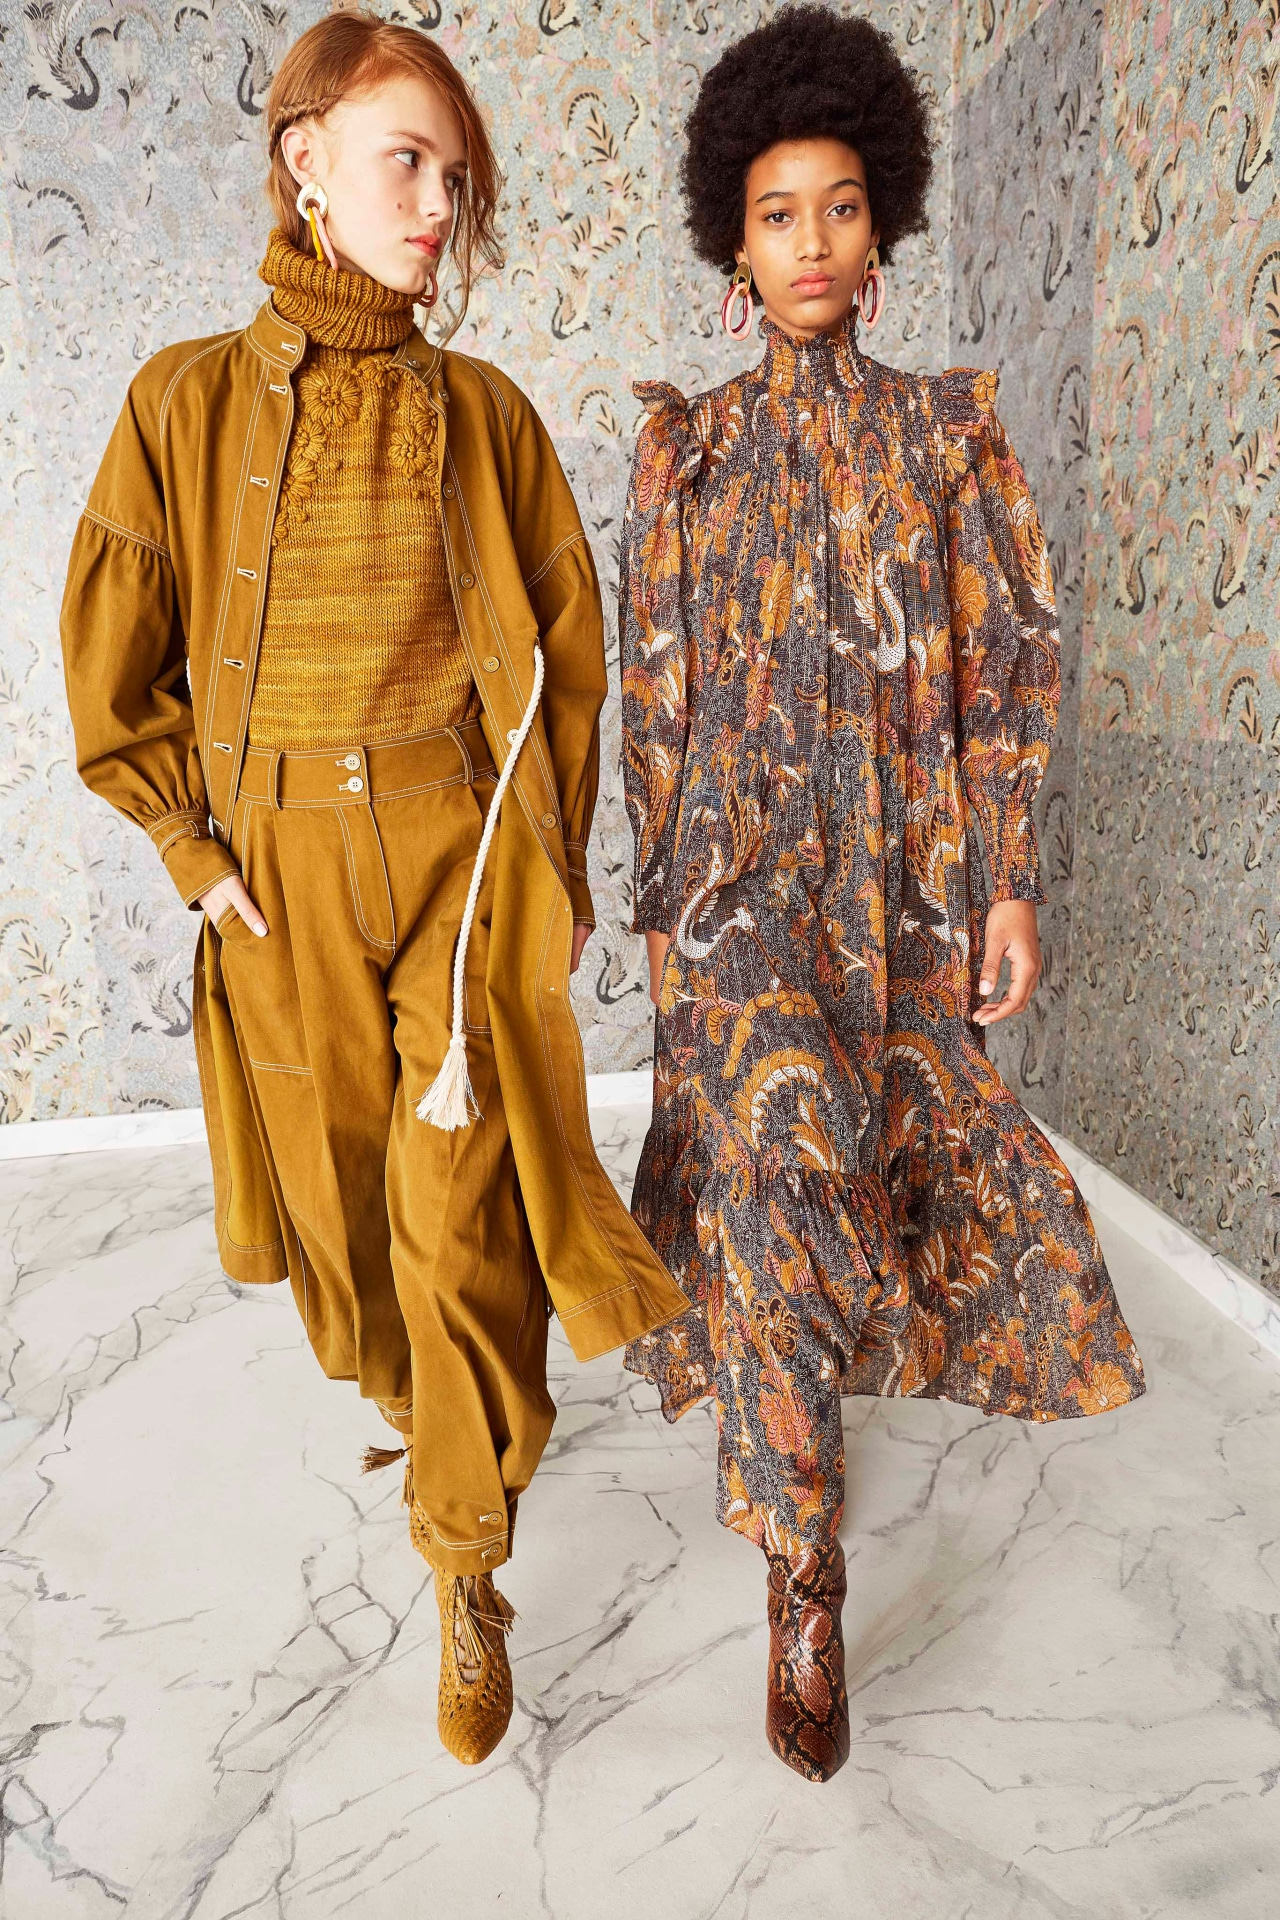 Ulla Johnson pre-fall 2019